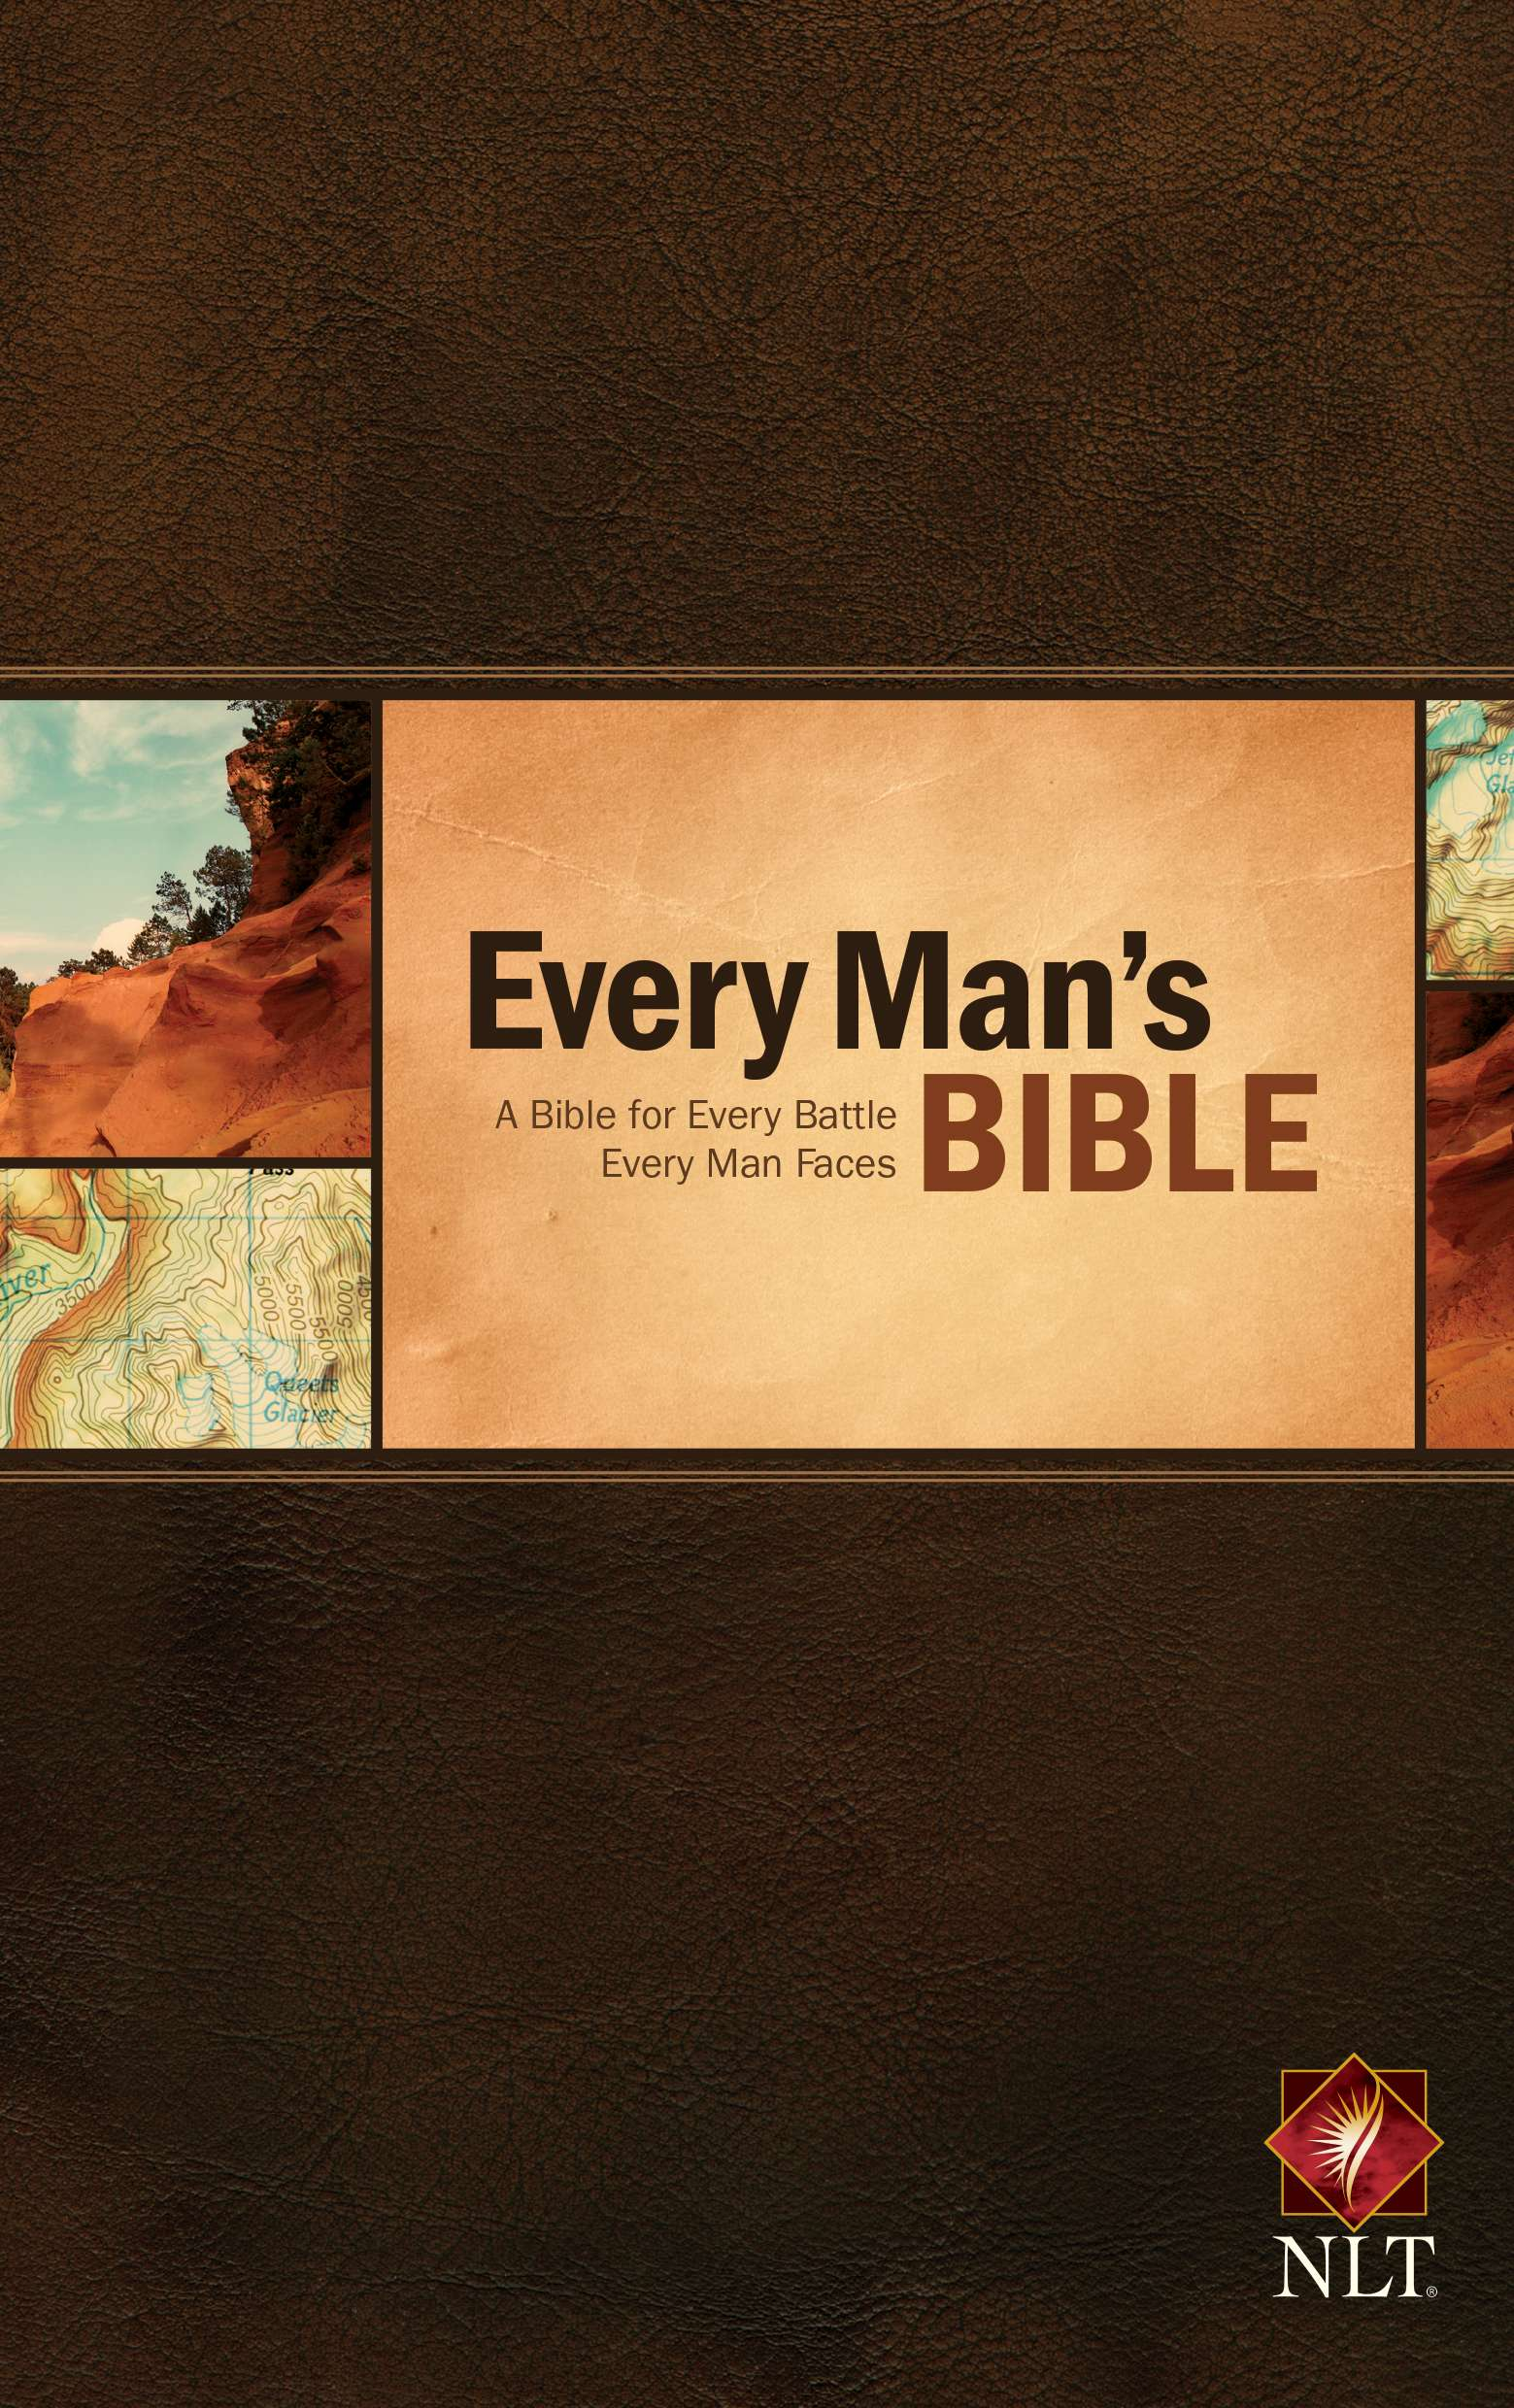 Cover of The Every Man's Bible NLT from Tyndale House Publishers